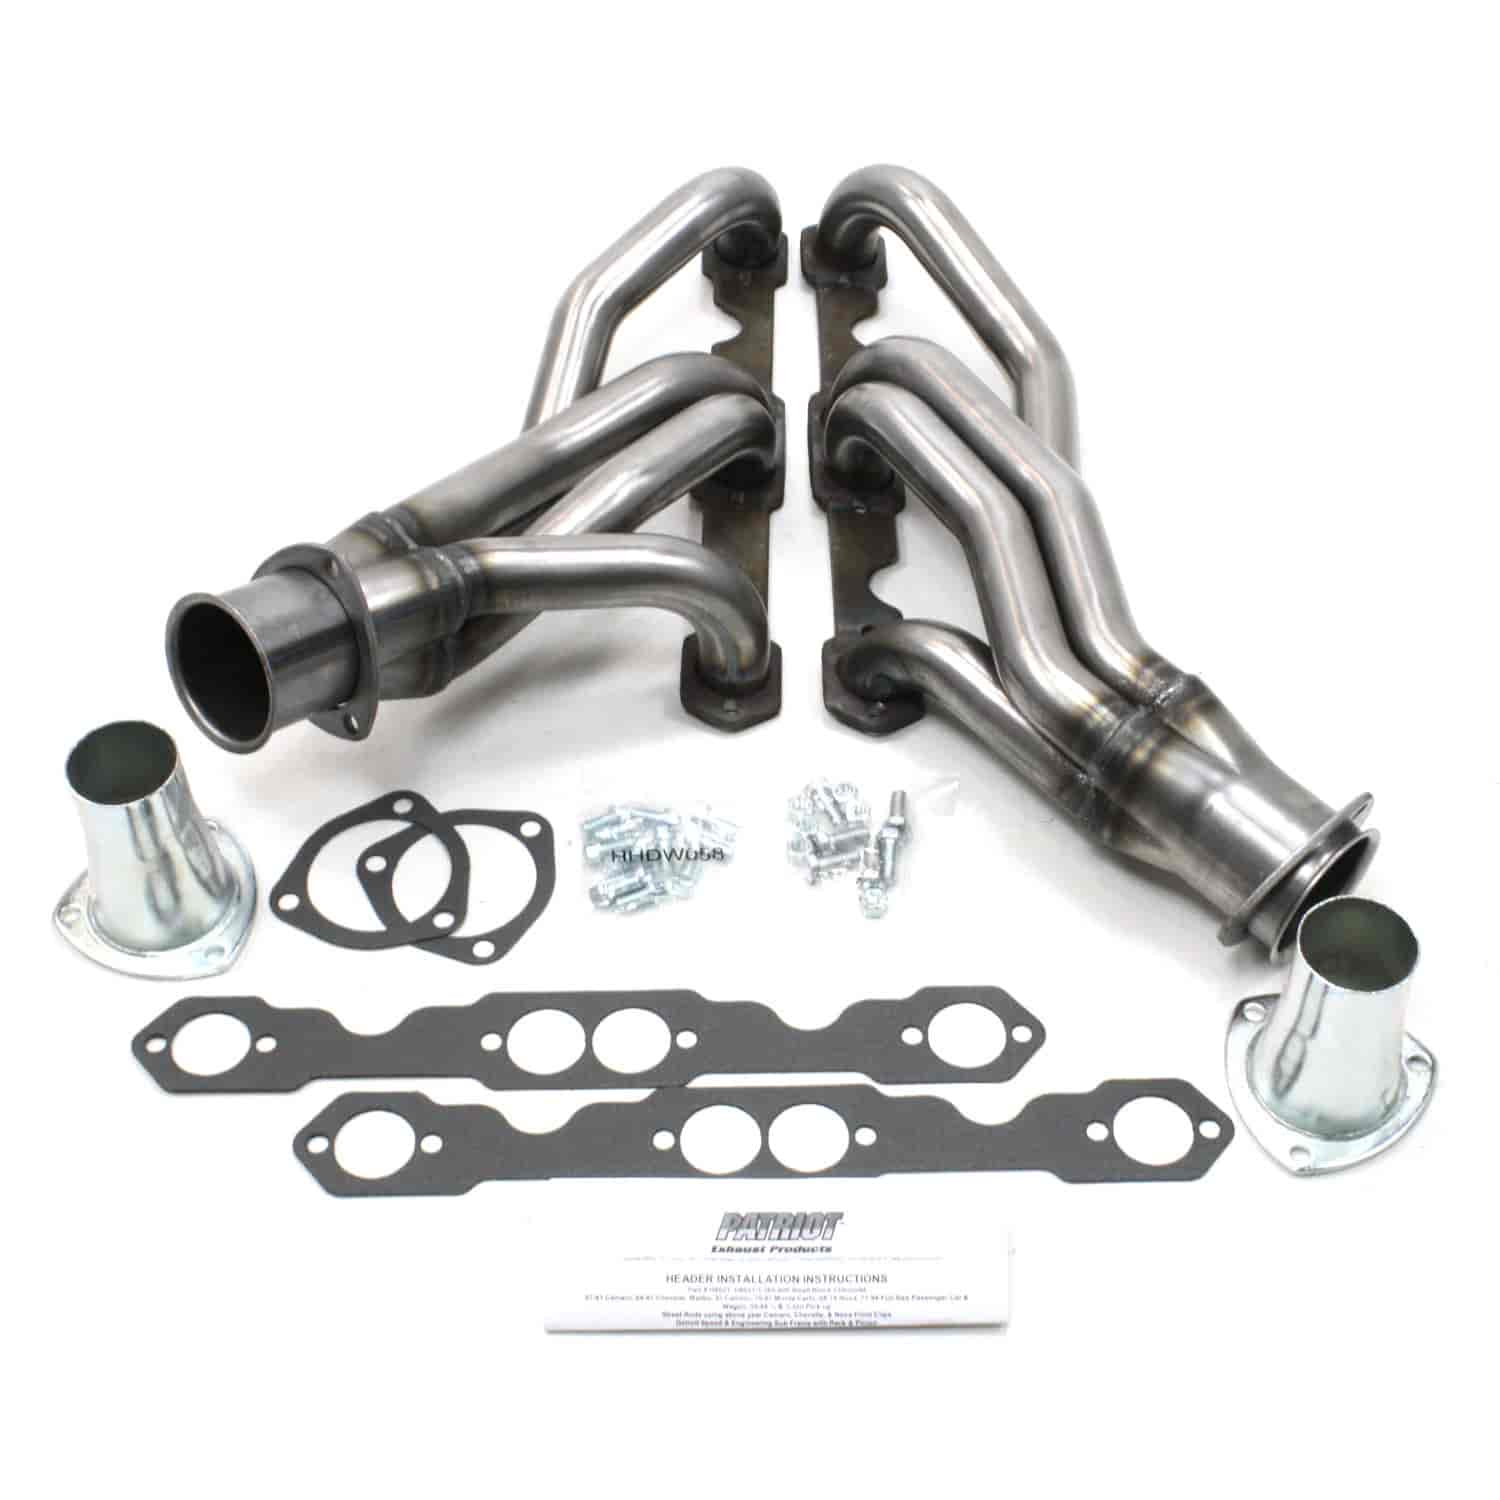 Patriot exhaust h8021 gm specific fit headers jegs patriot exhaust h8021 freerunsca Image collections